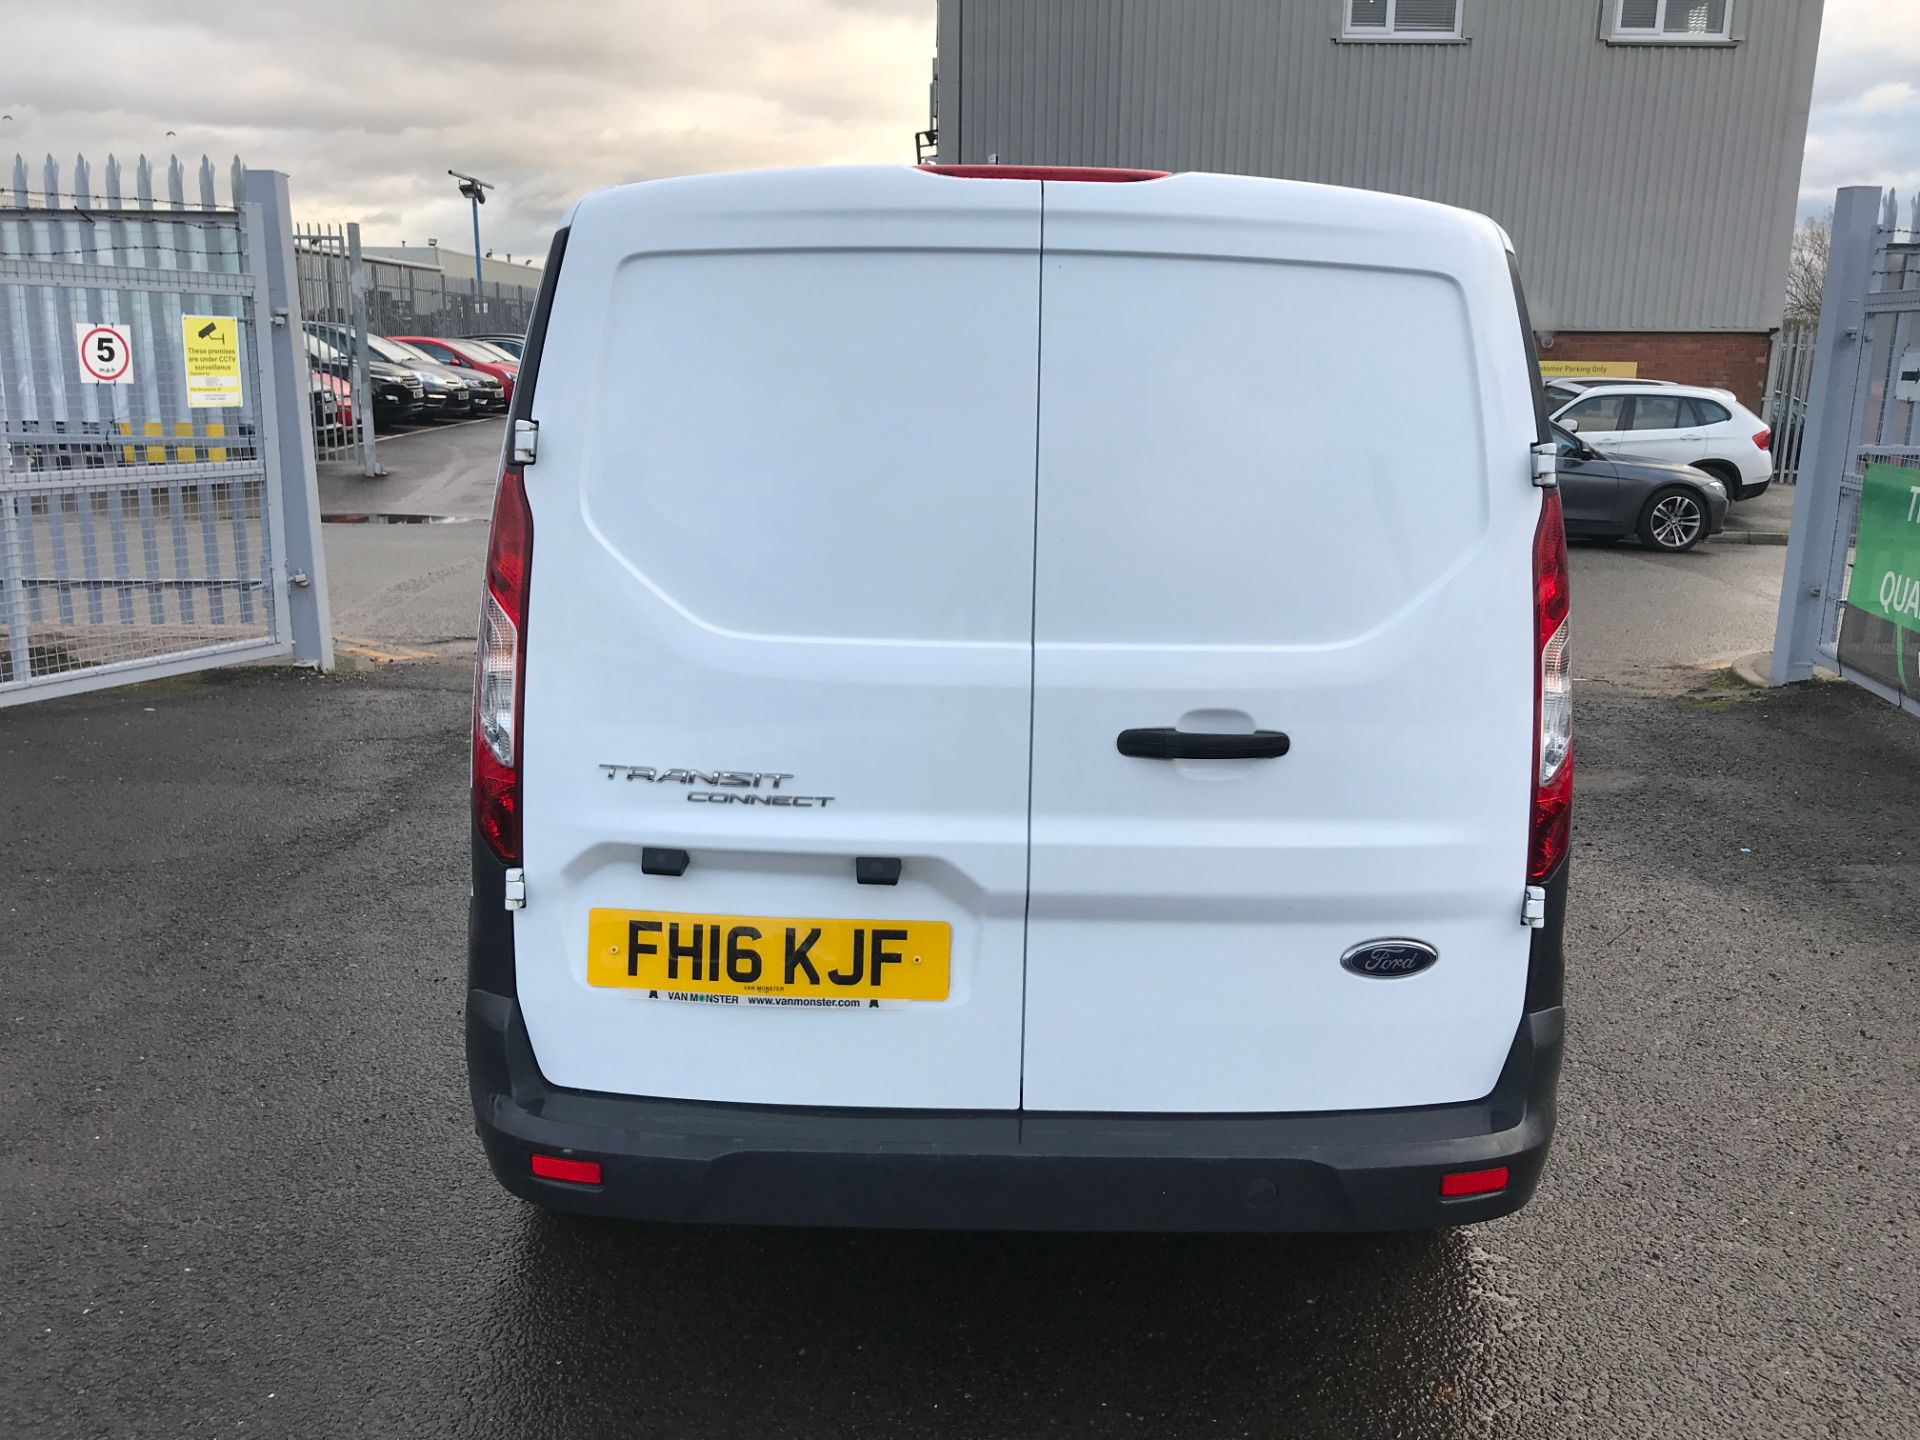 2016 Ford Transit Connect T220 L1 H1 1.5TDCI 75PS EURO 6 (FH16KJF) Image 9